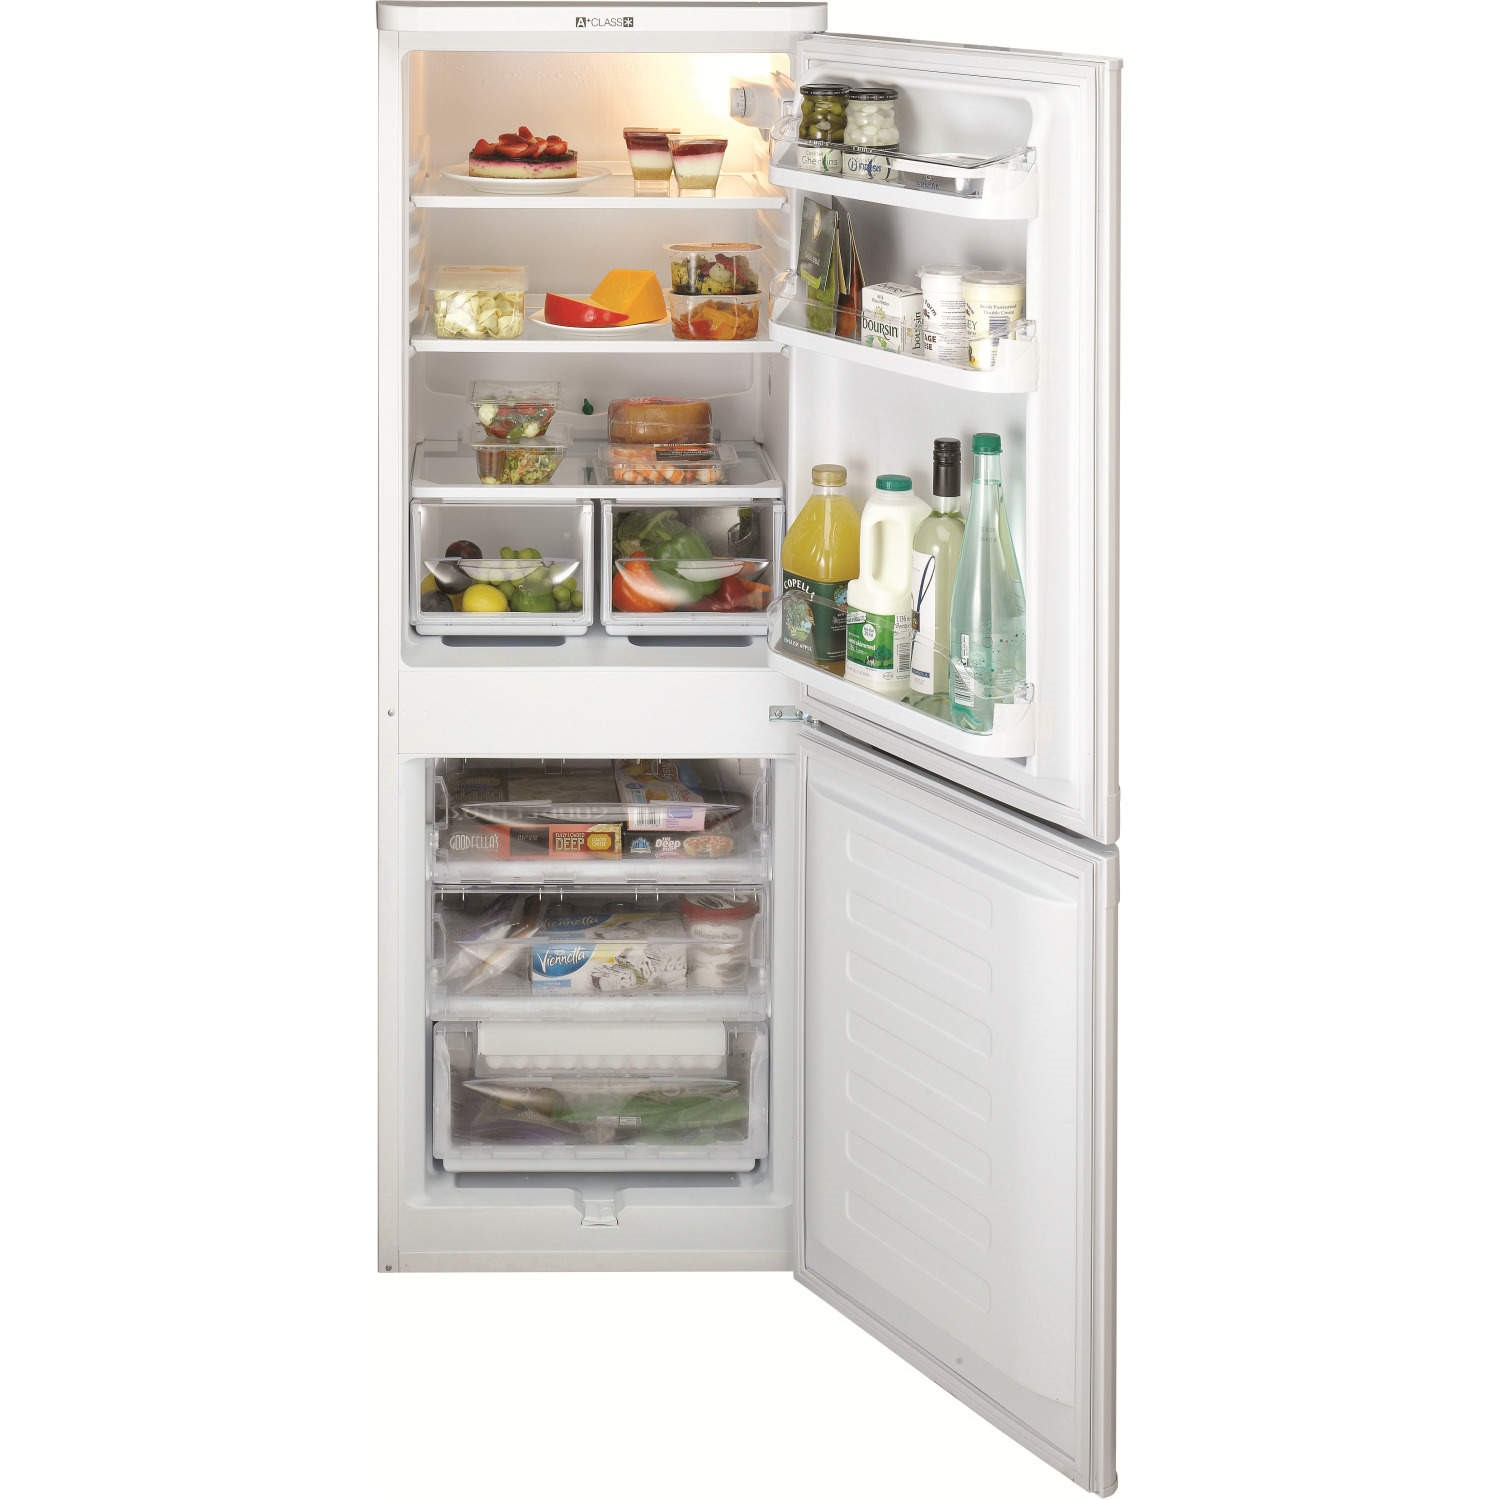 Indesit Ncaa55 157x55cm Freestanding Fridge Freezer White